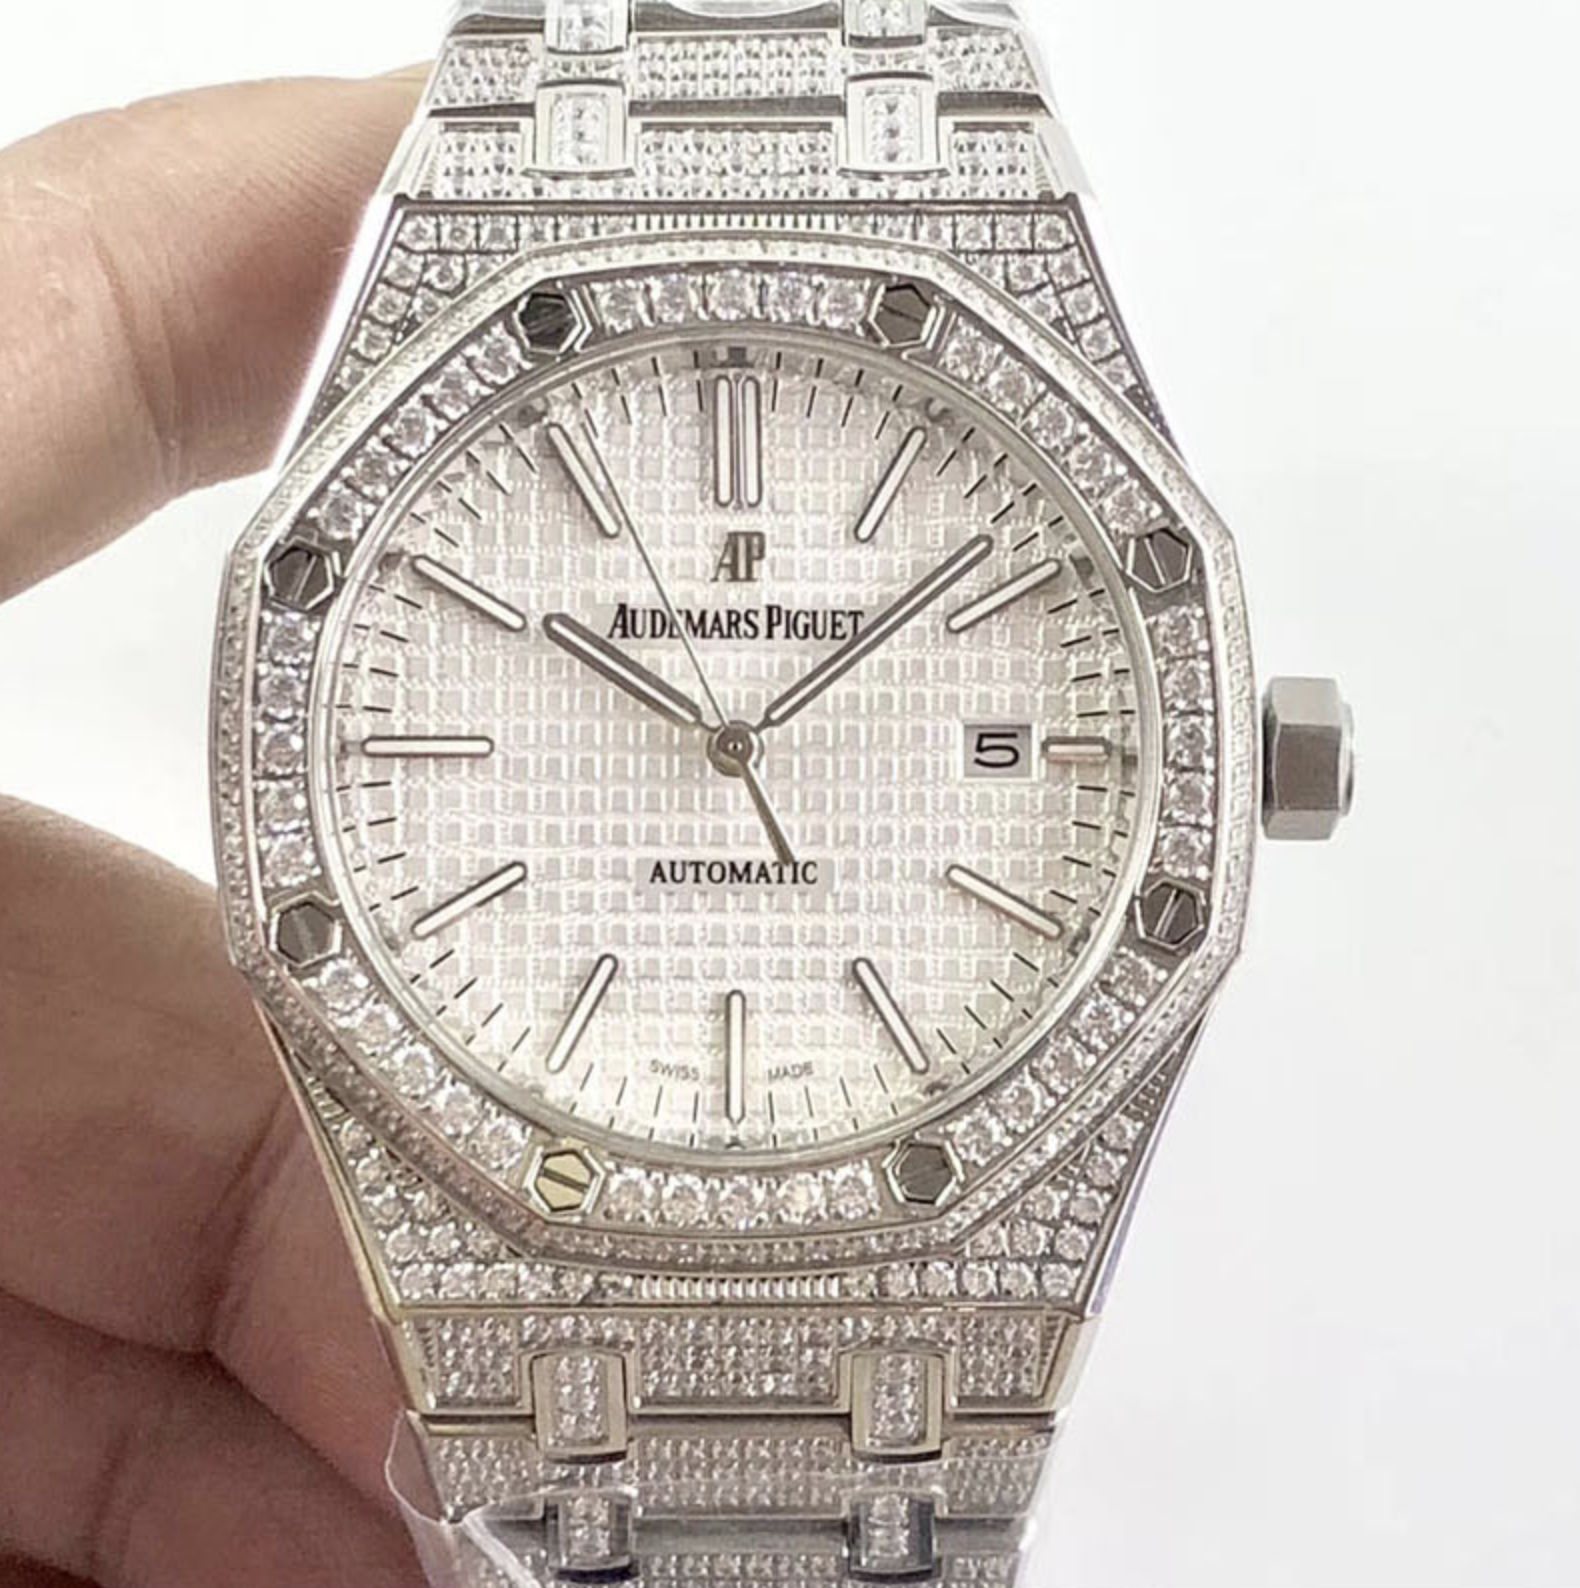 Audemars piguet replica royal oak 15400ST 41mm white gold full paved diamonds white dial